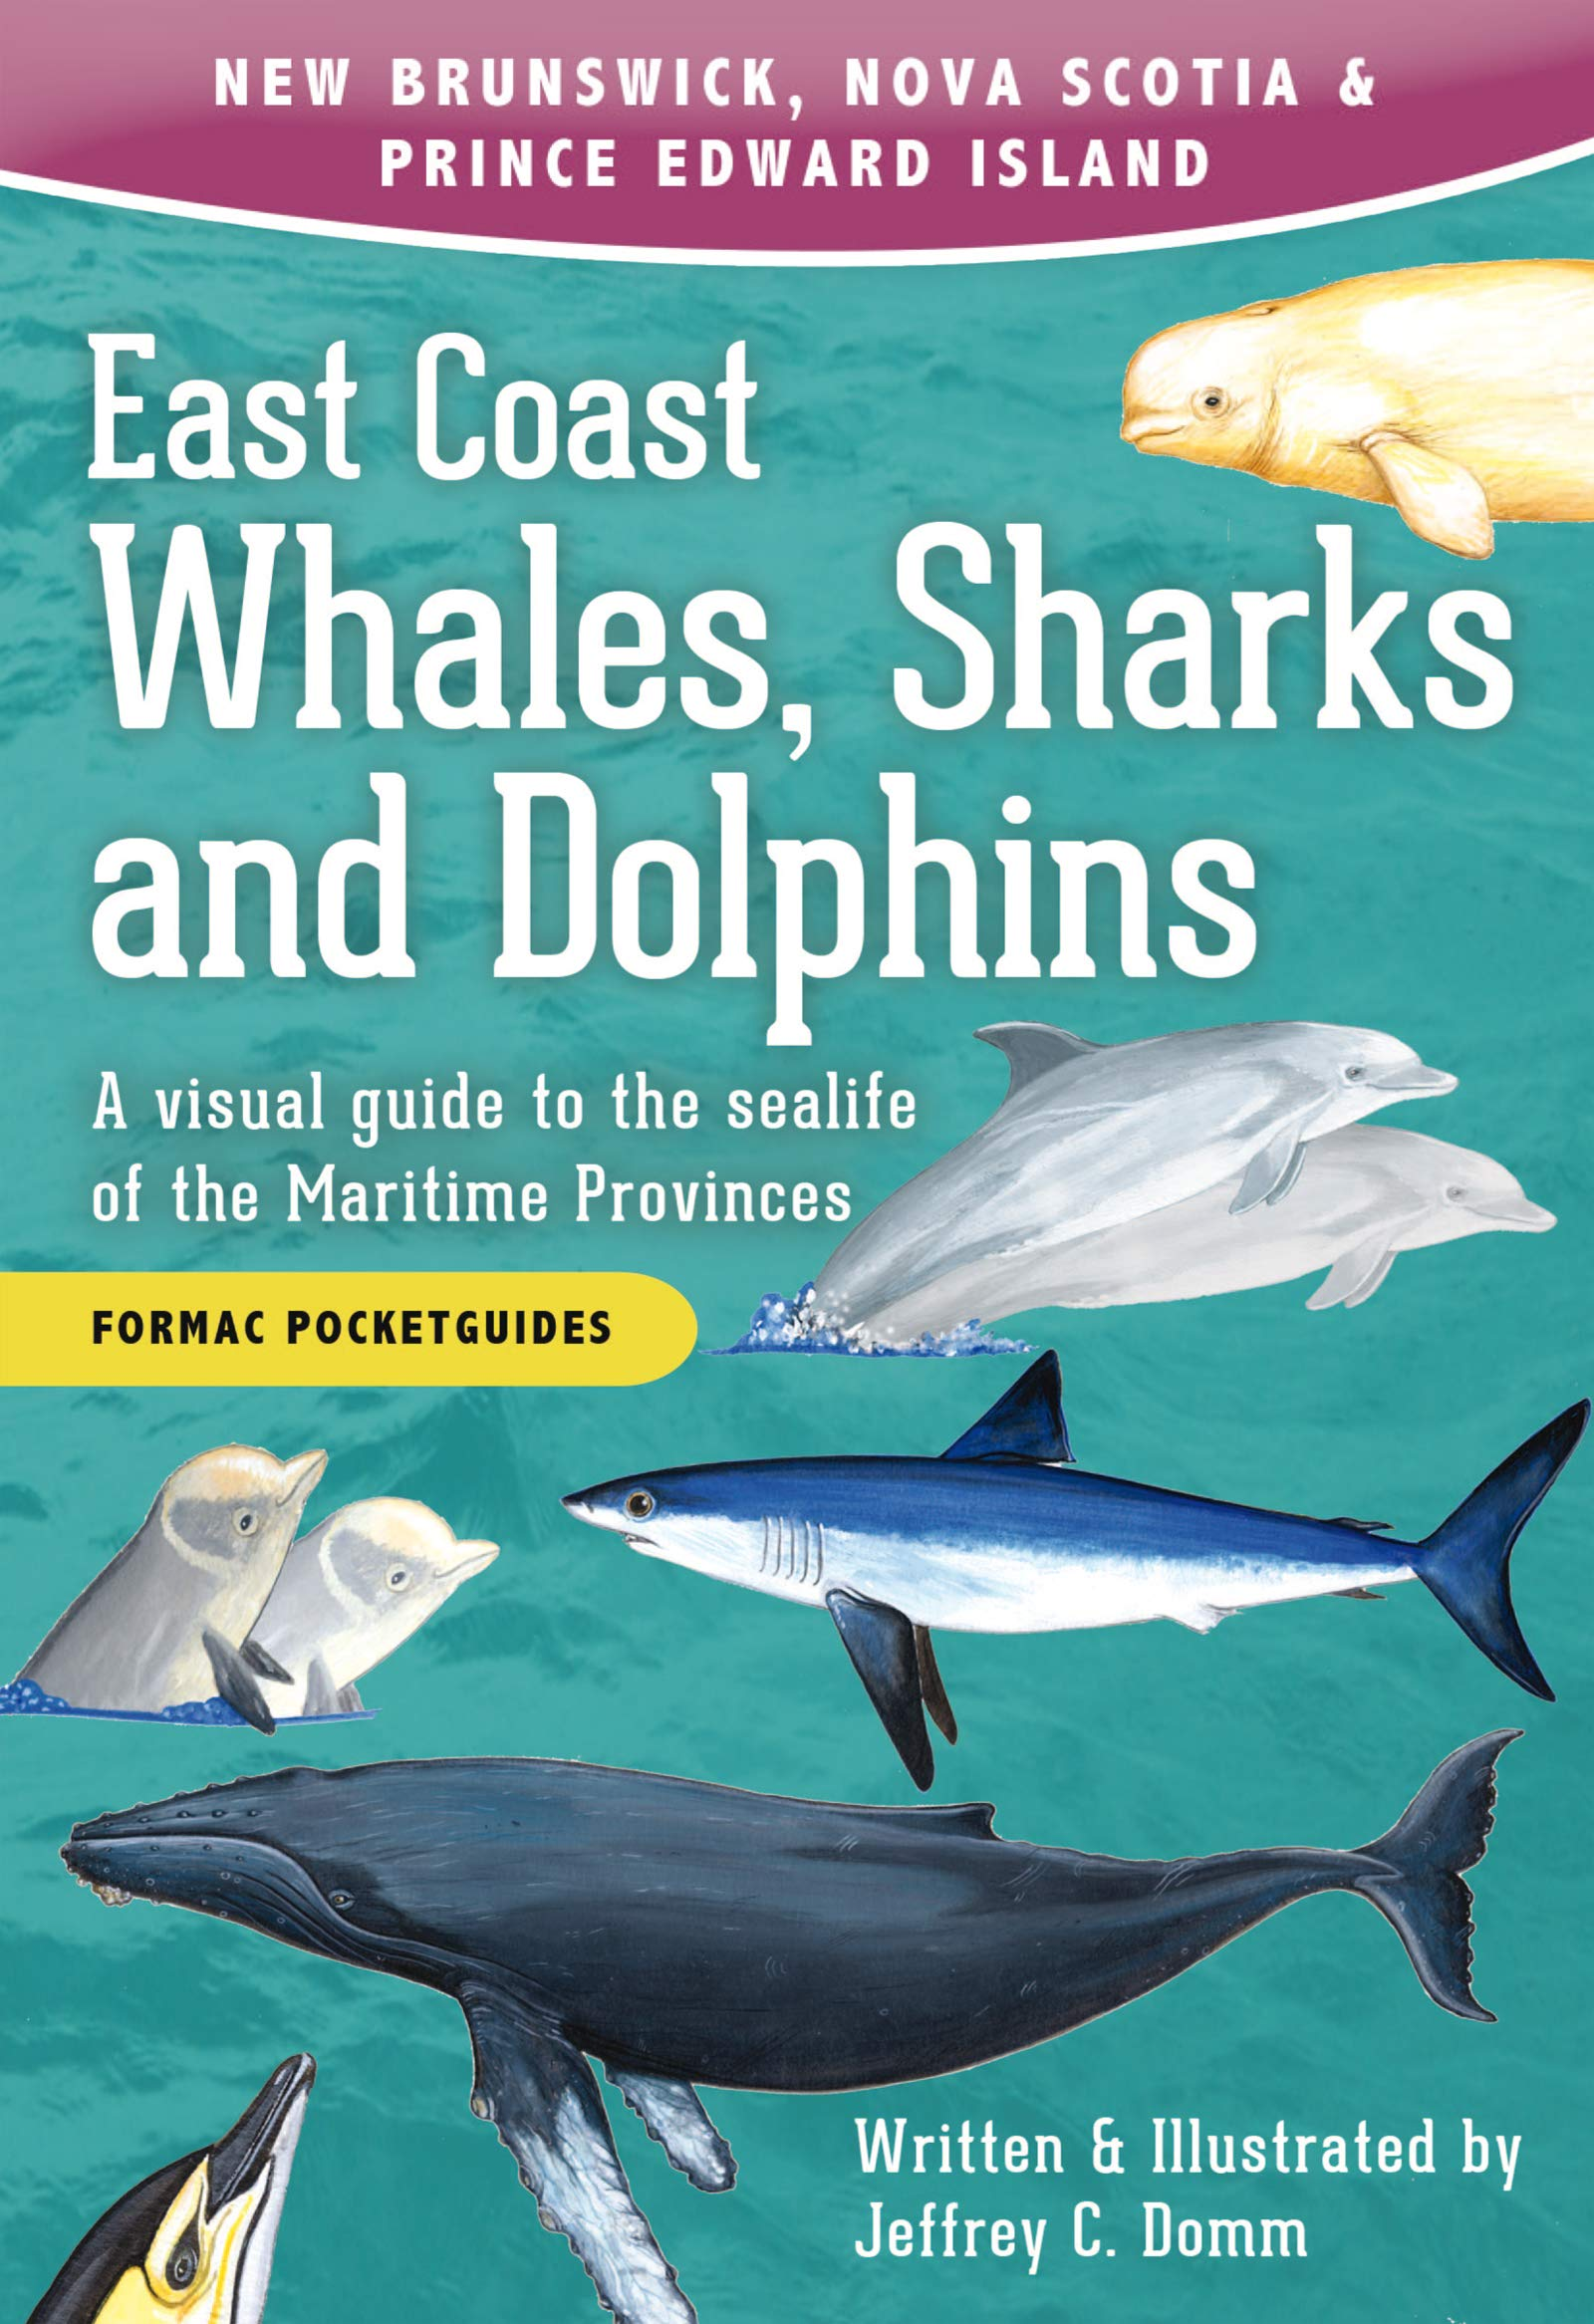 East Coast Whales, Sharks and Dolphins: A visual guide 2e